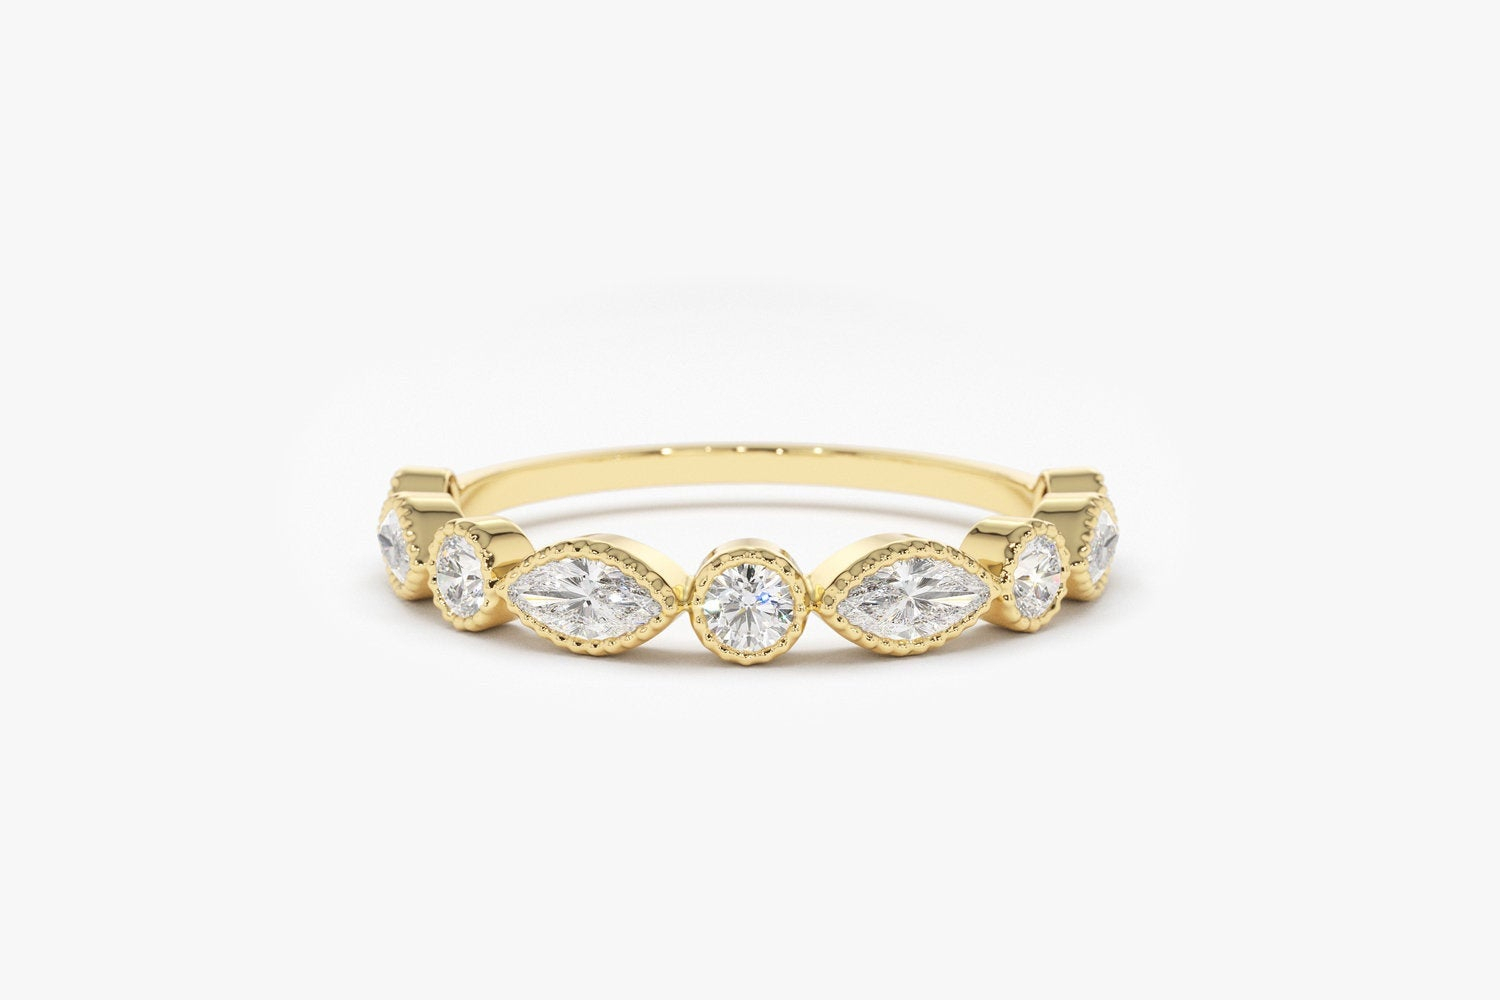 Marquise And Round Diamond Ring In 14K Gold / Milgrain Bezel Setting Alternating Marquise & Round Diamond Half Eternity Anniversary Band Pertaining To Best And Newest Marquise And Round Diamond Alternating Anniversary Bands In Rose Gold (Gallery 8 of 25)